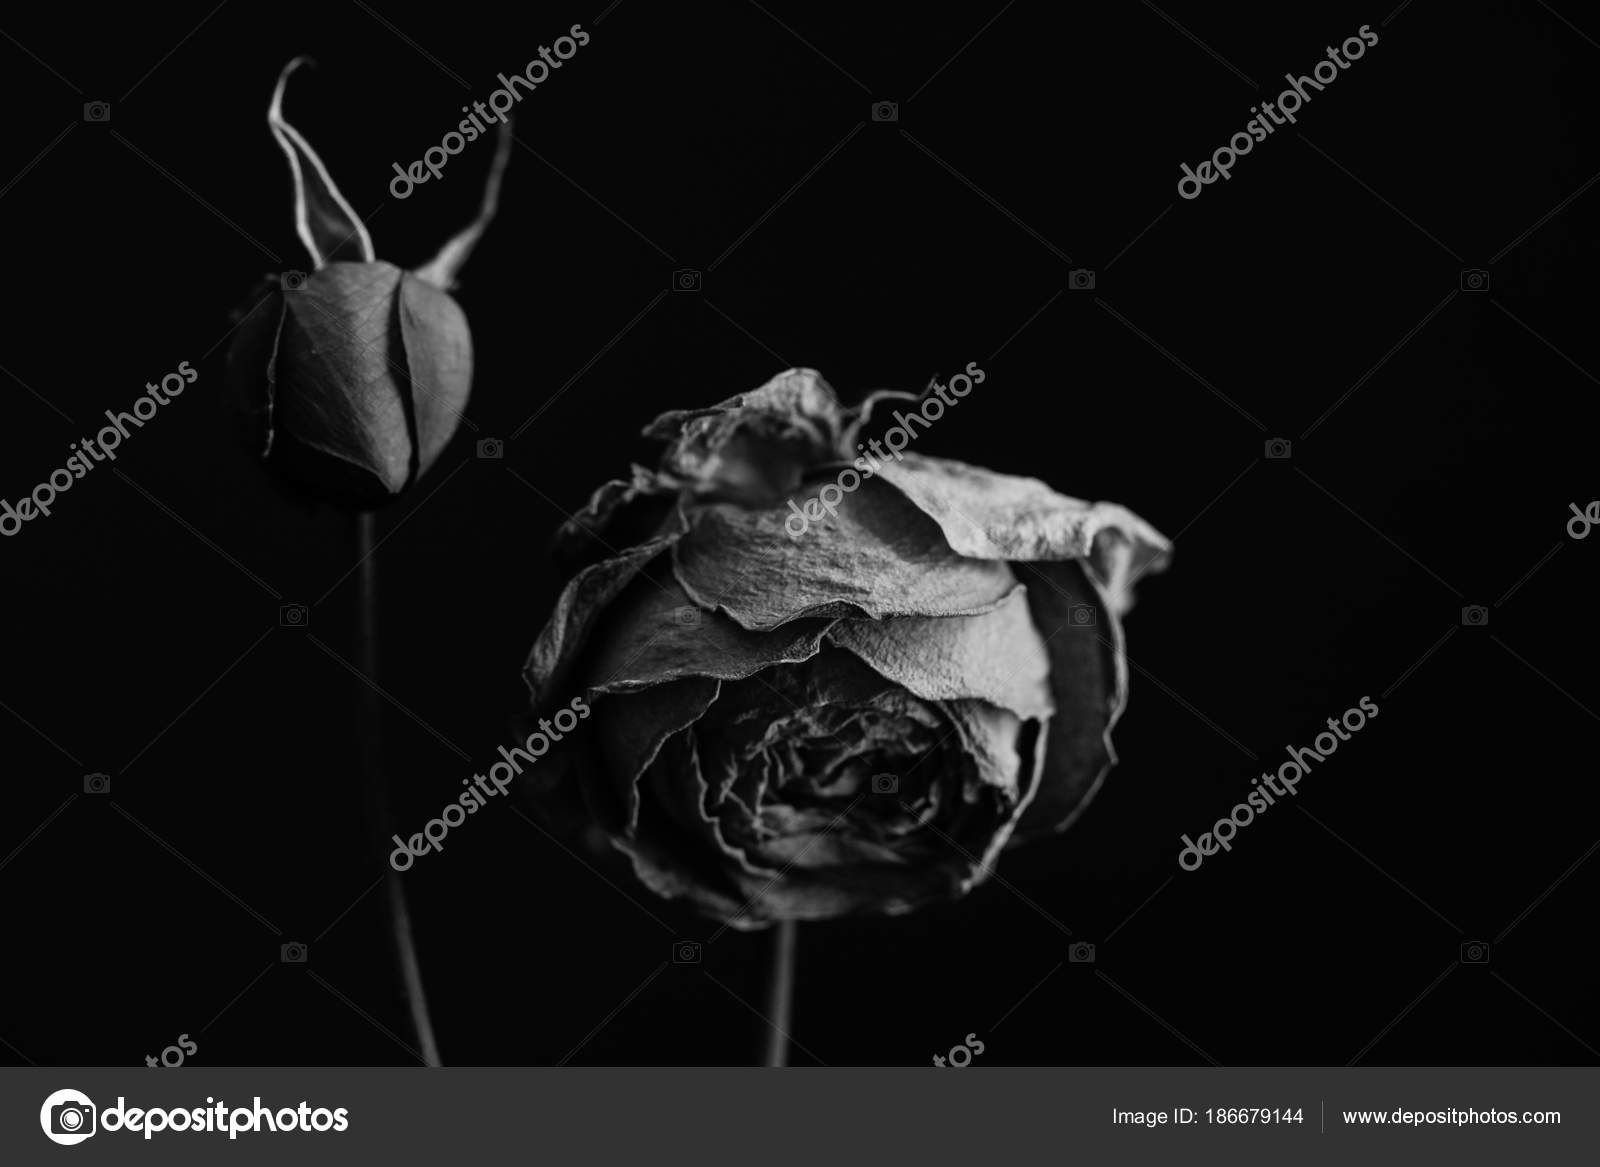 The Most Famous Flowers Artwork Smokey Roses And Tulips In Dark Balck White Close Up Black Background Photo By